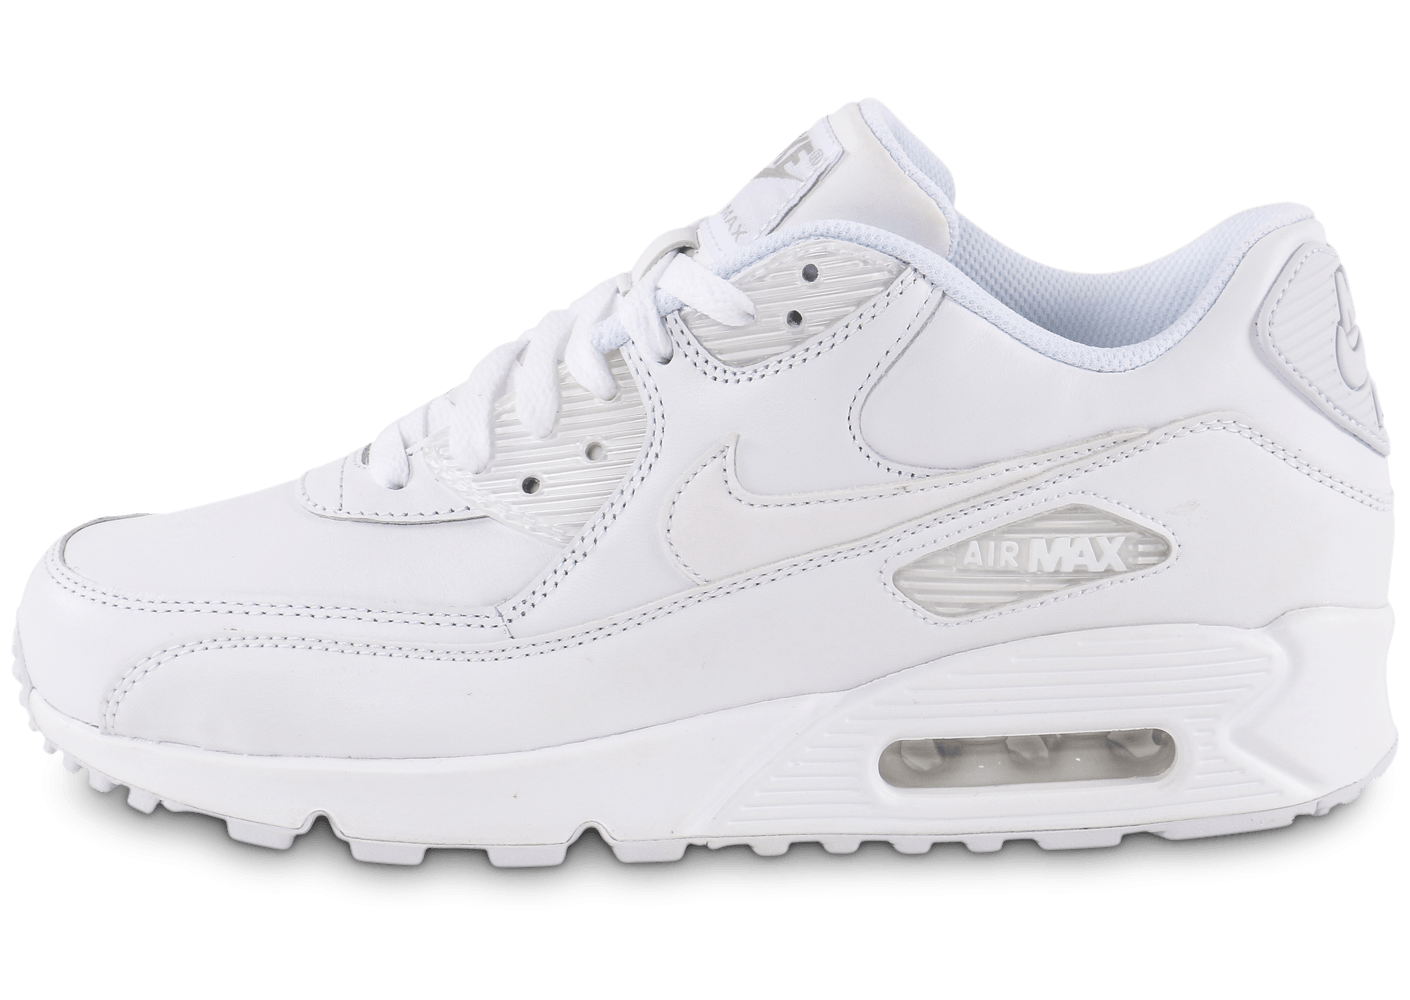 los angeles c00c2 e7ed2 air max 90 blanche taille 38